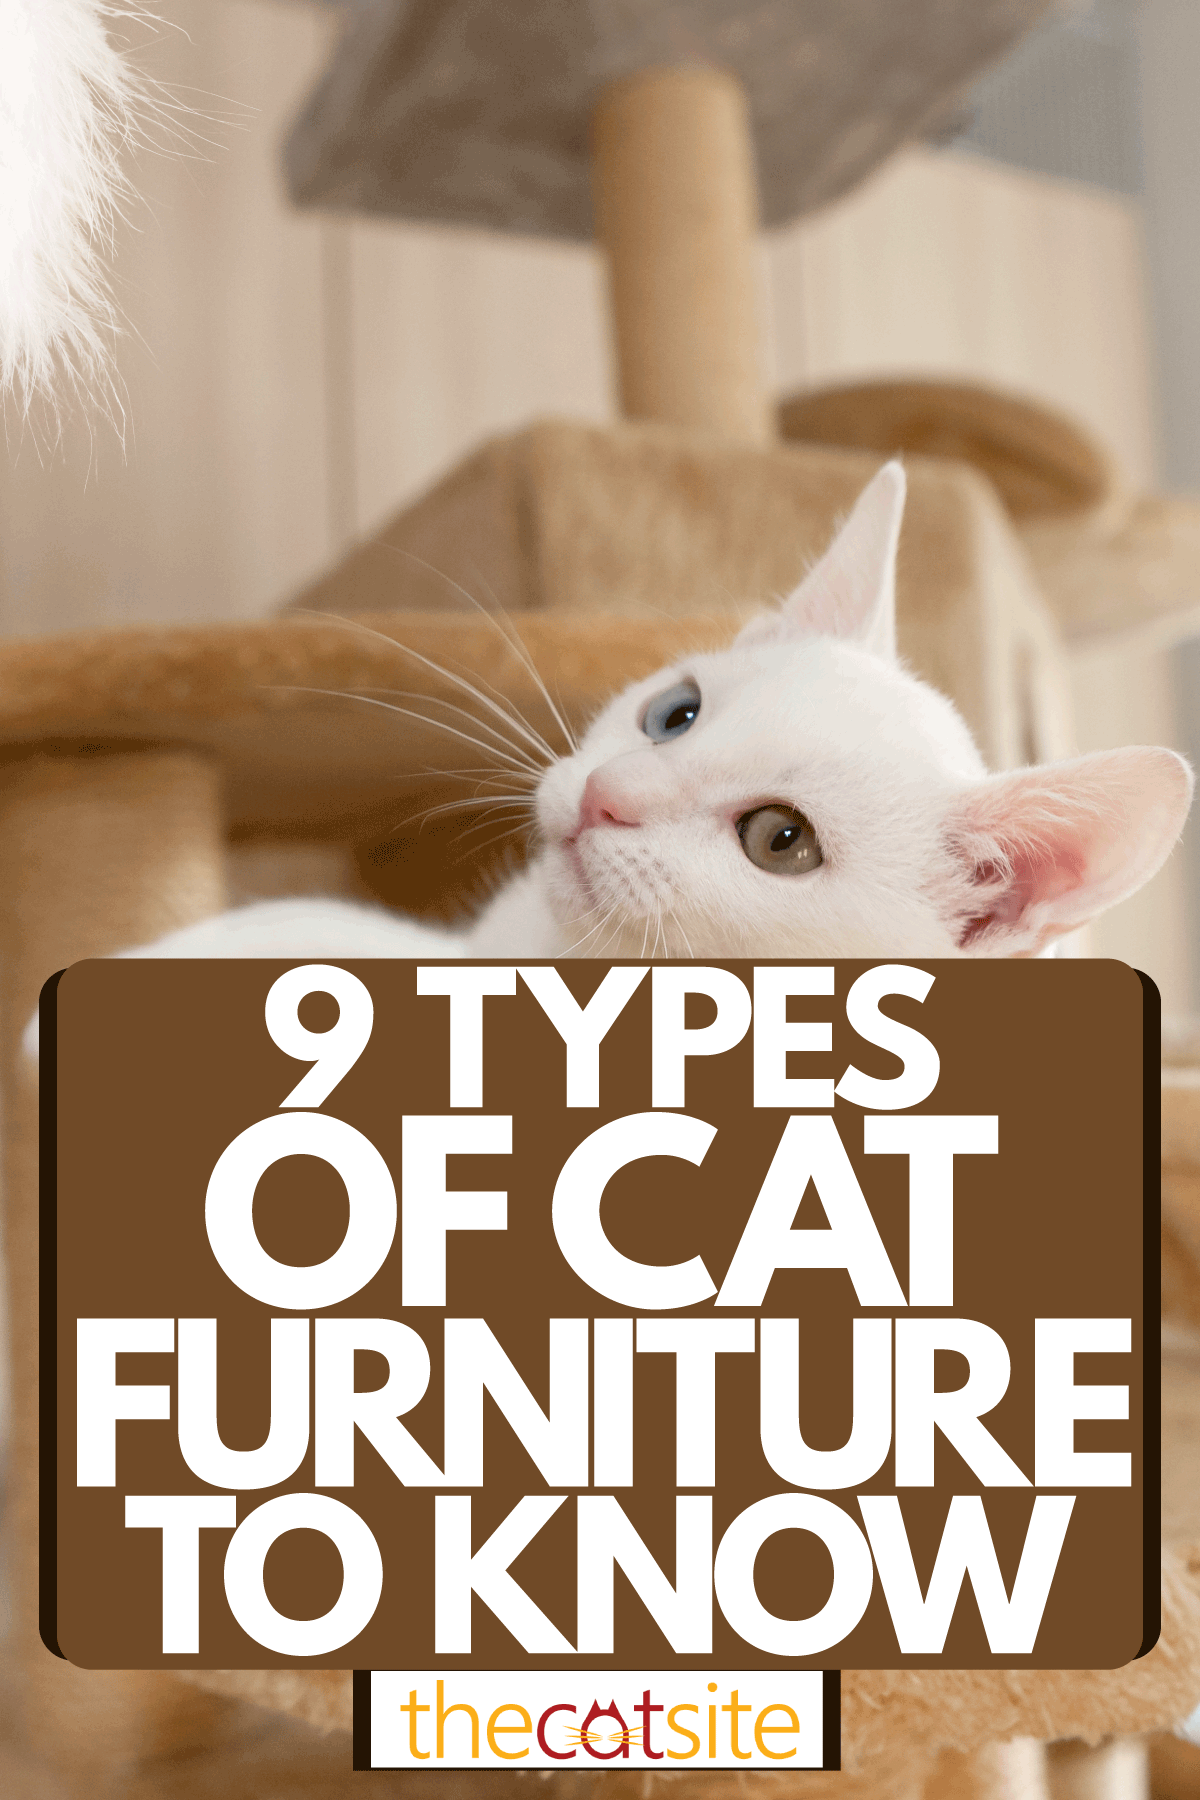 9 Types Of Cat Furniture : cat lying on a small playing platform